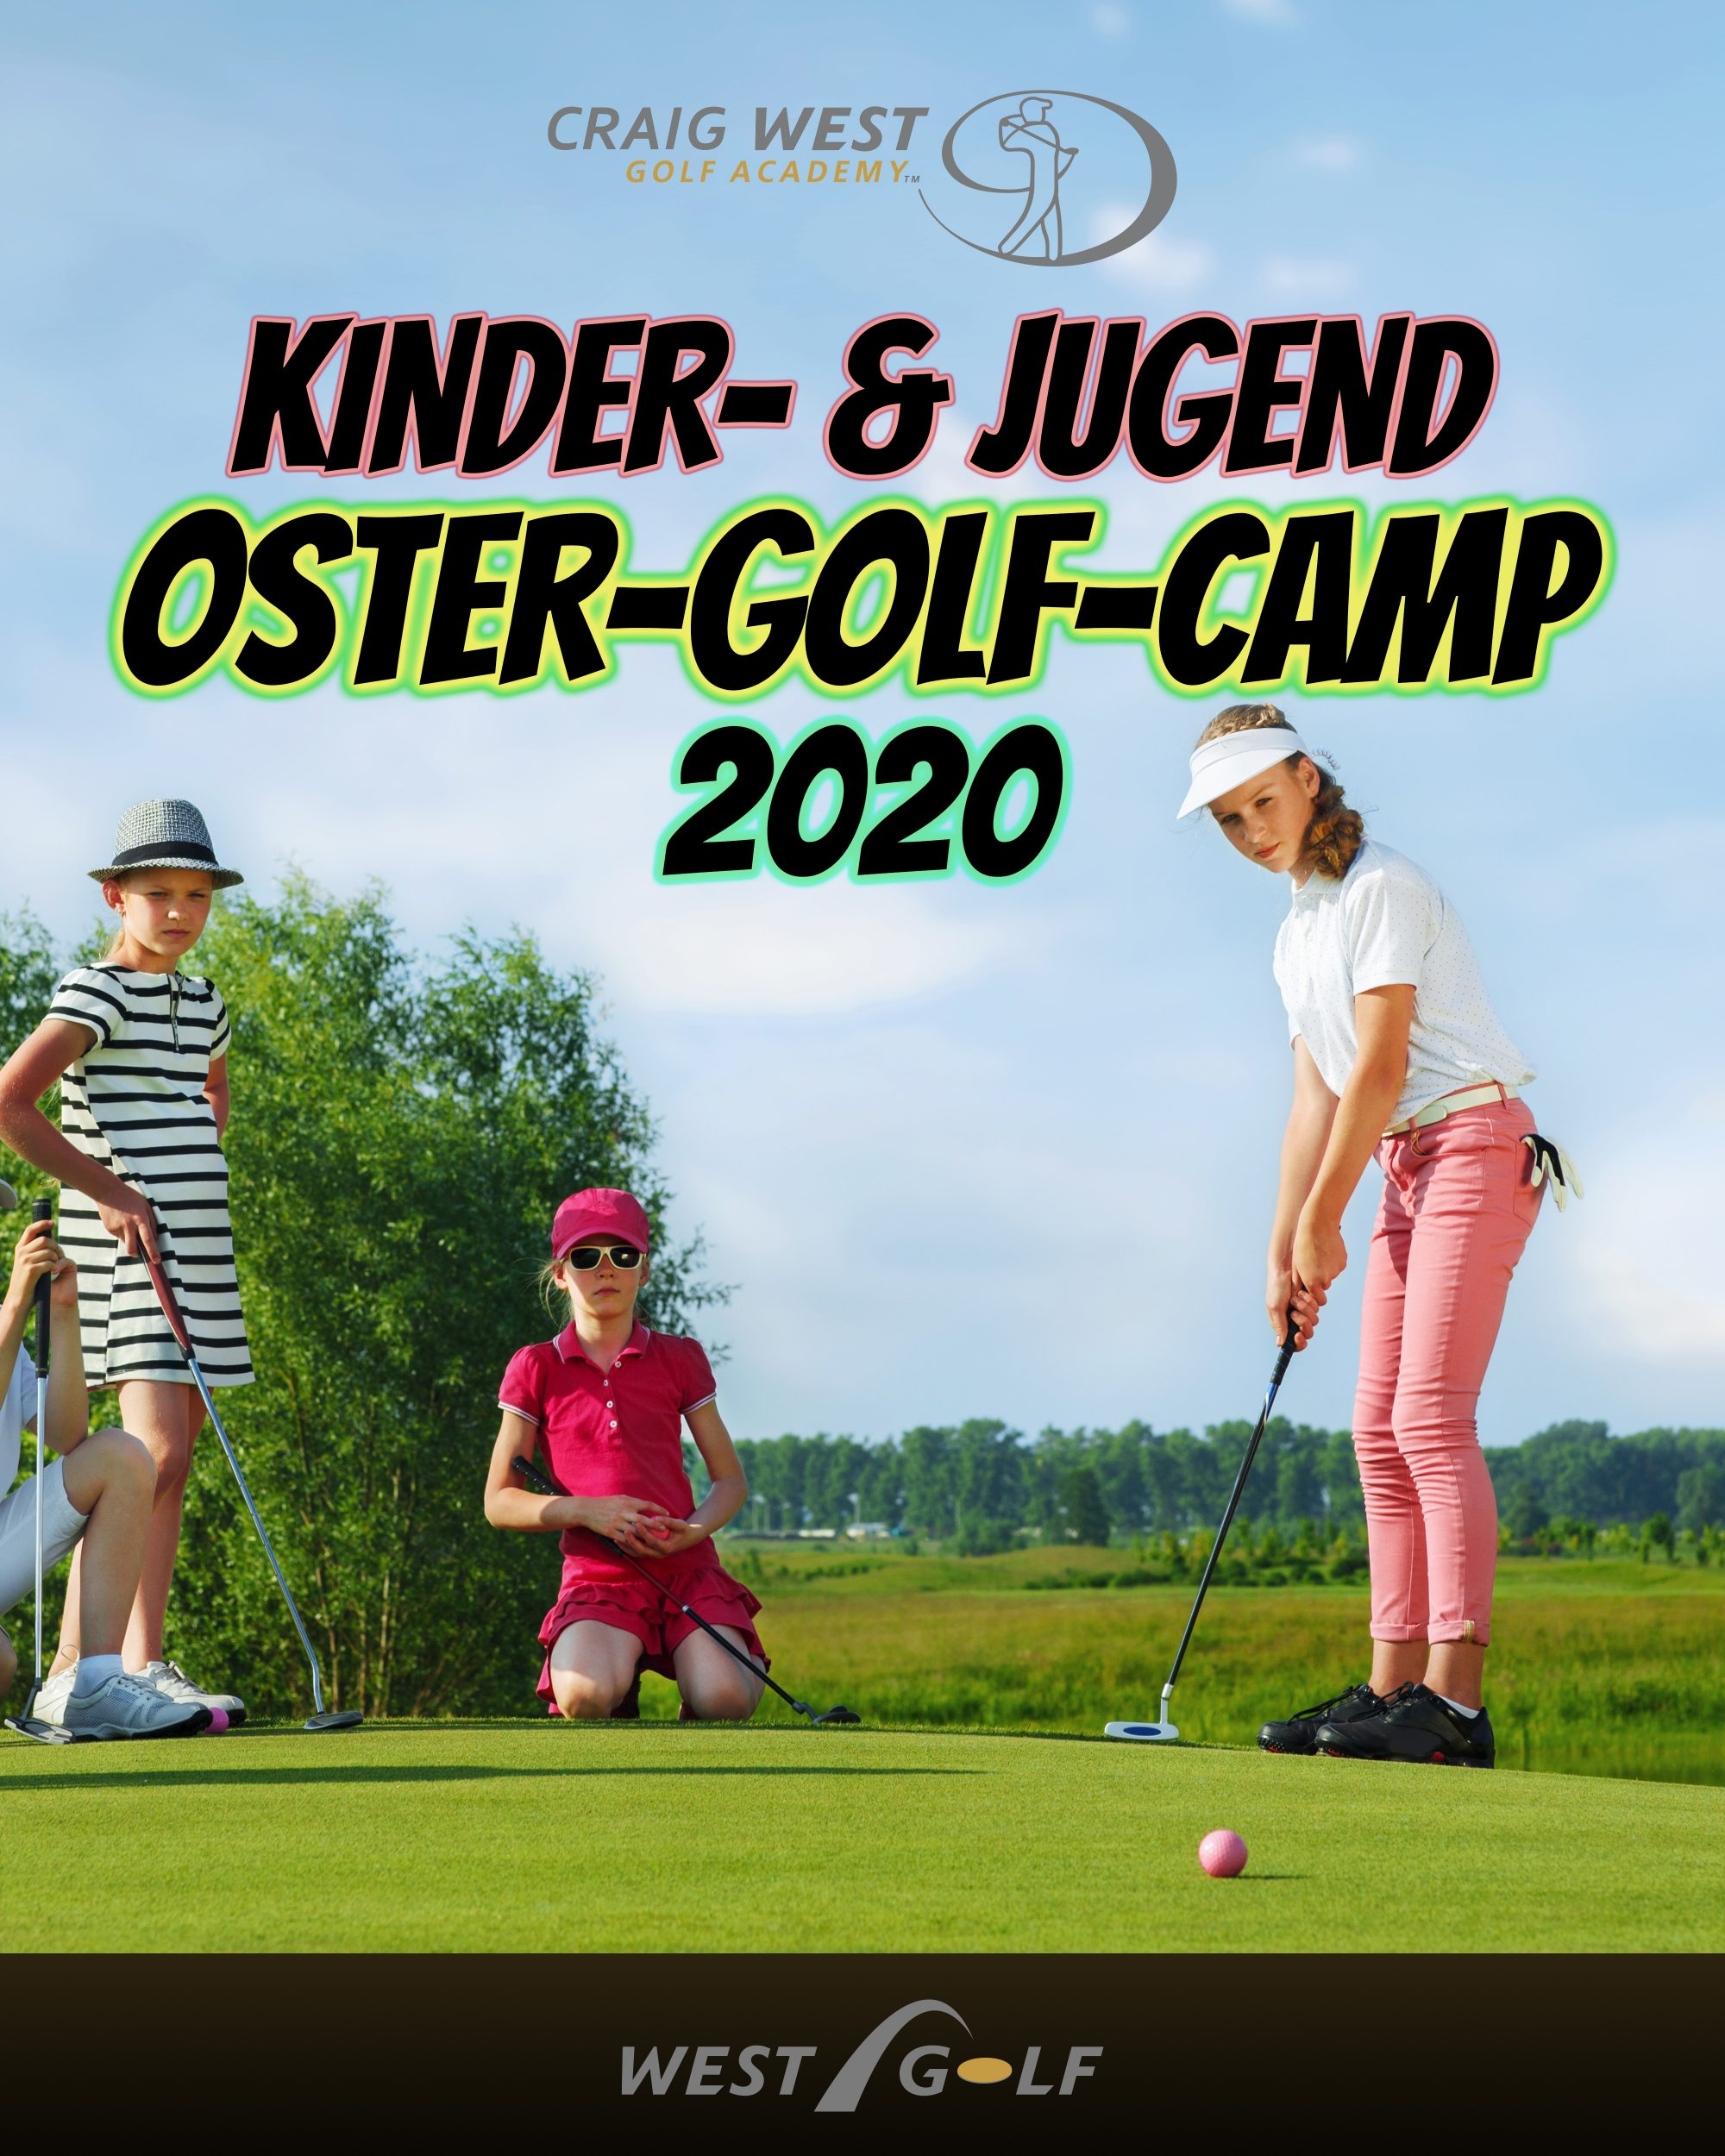 Kinder- & Jugend Oster-Golf-Camp 2020